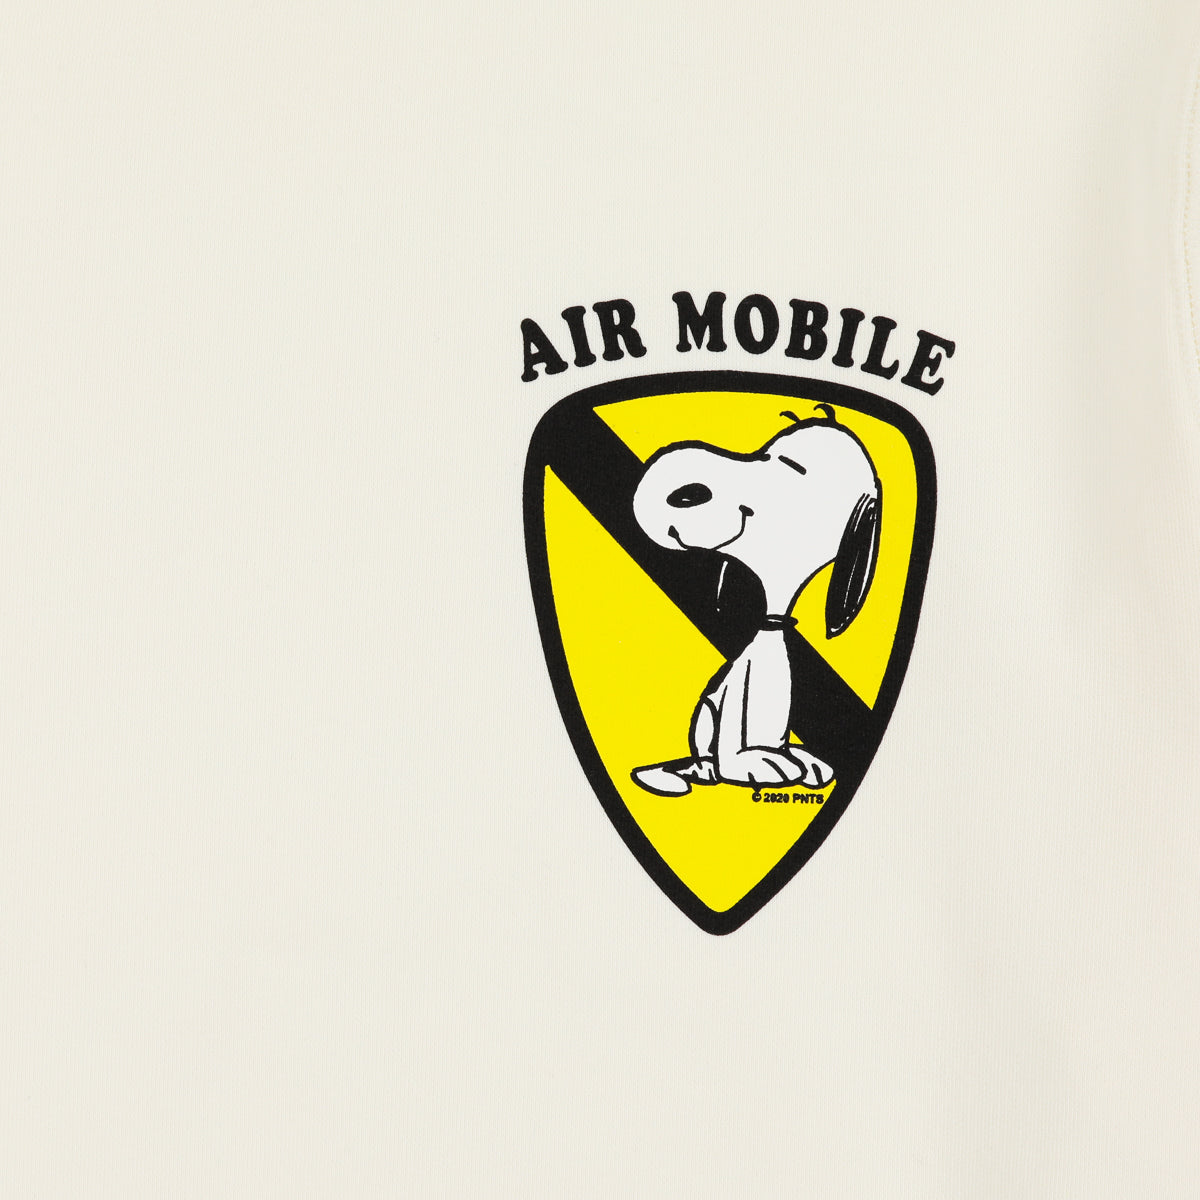 SNOOPY AIRMOBILE SWEATSHIRT